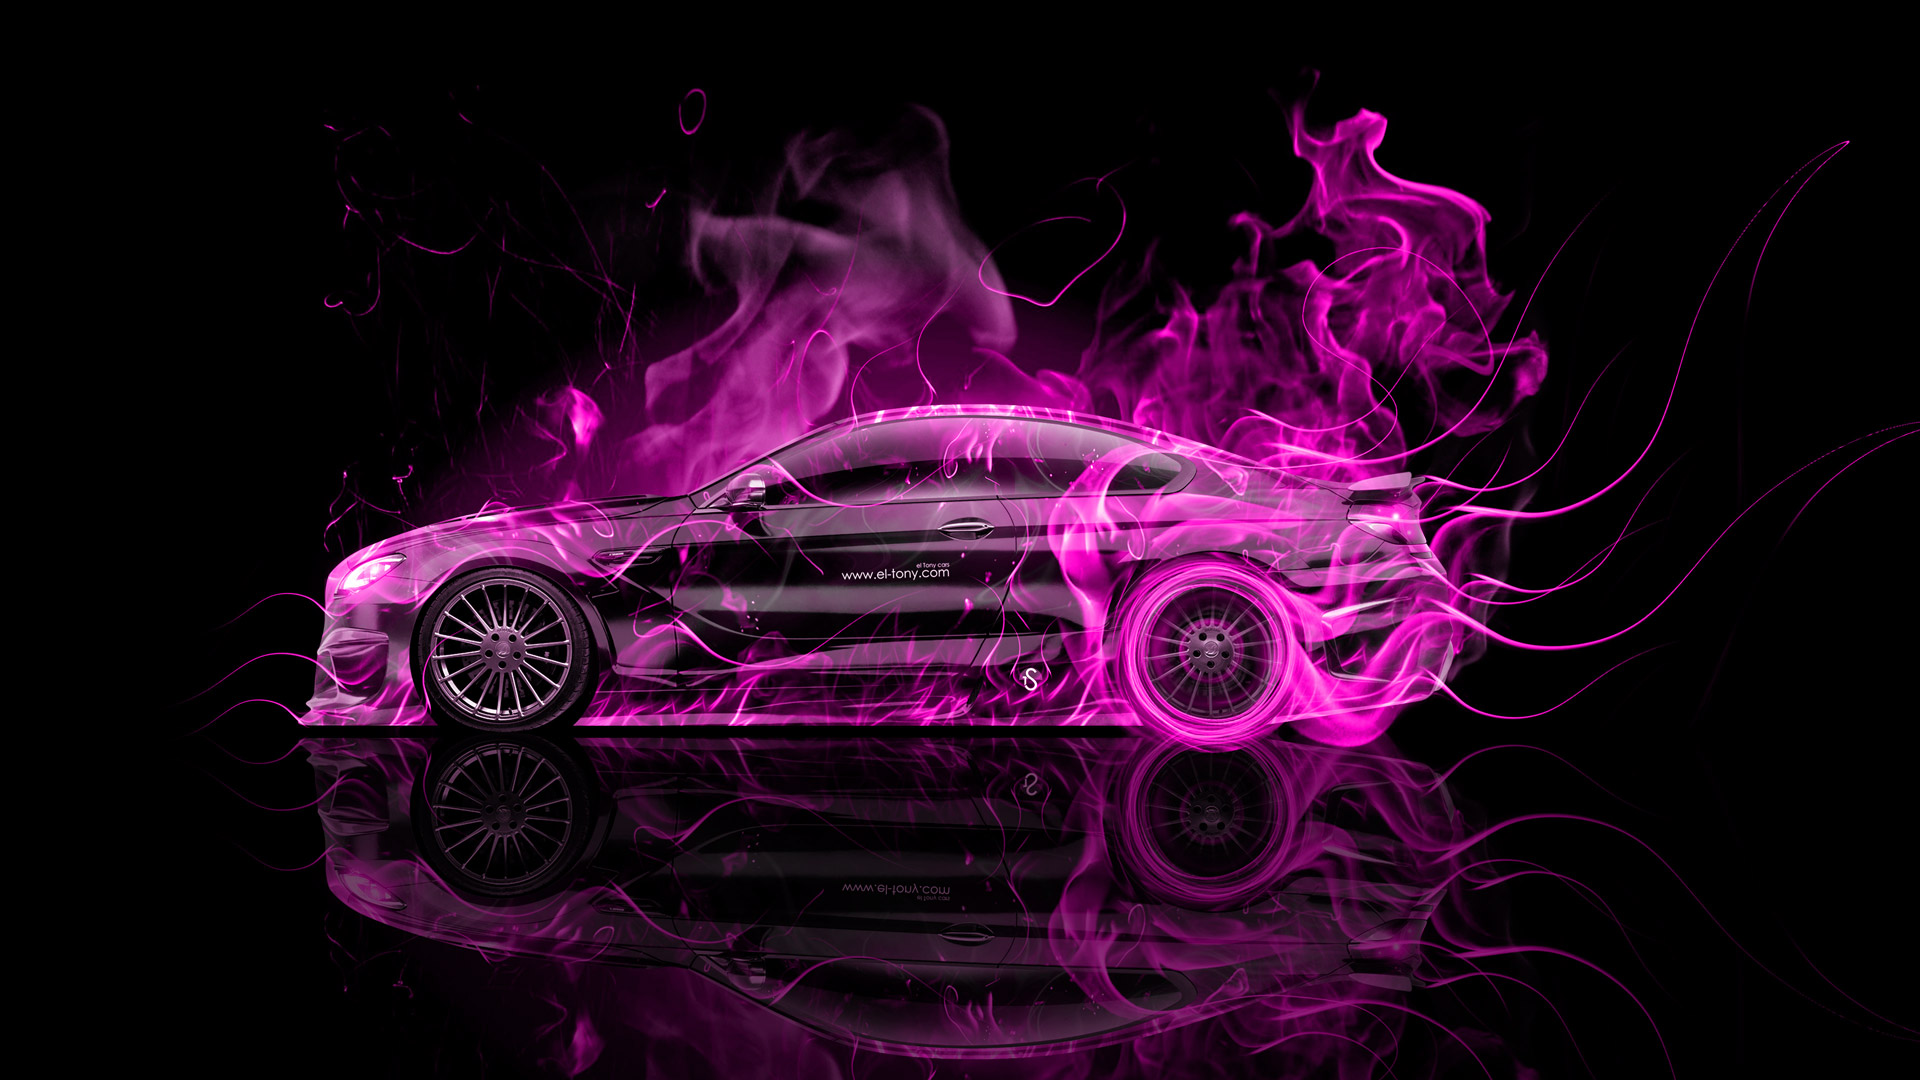 4k Wallpapers Exotic Super Sports Cars Bmw M6 Hamann Tuning Side Fire Abstract Car 2015 El Tony